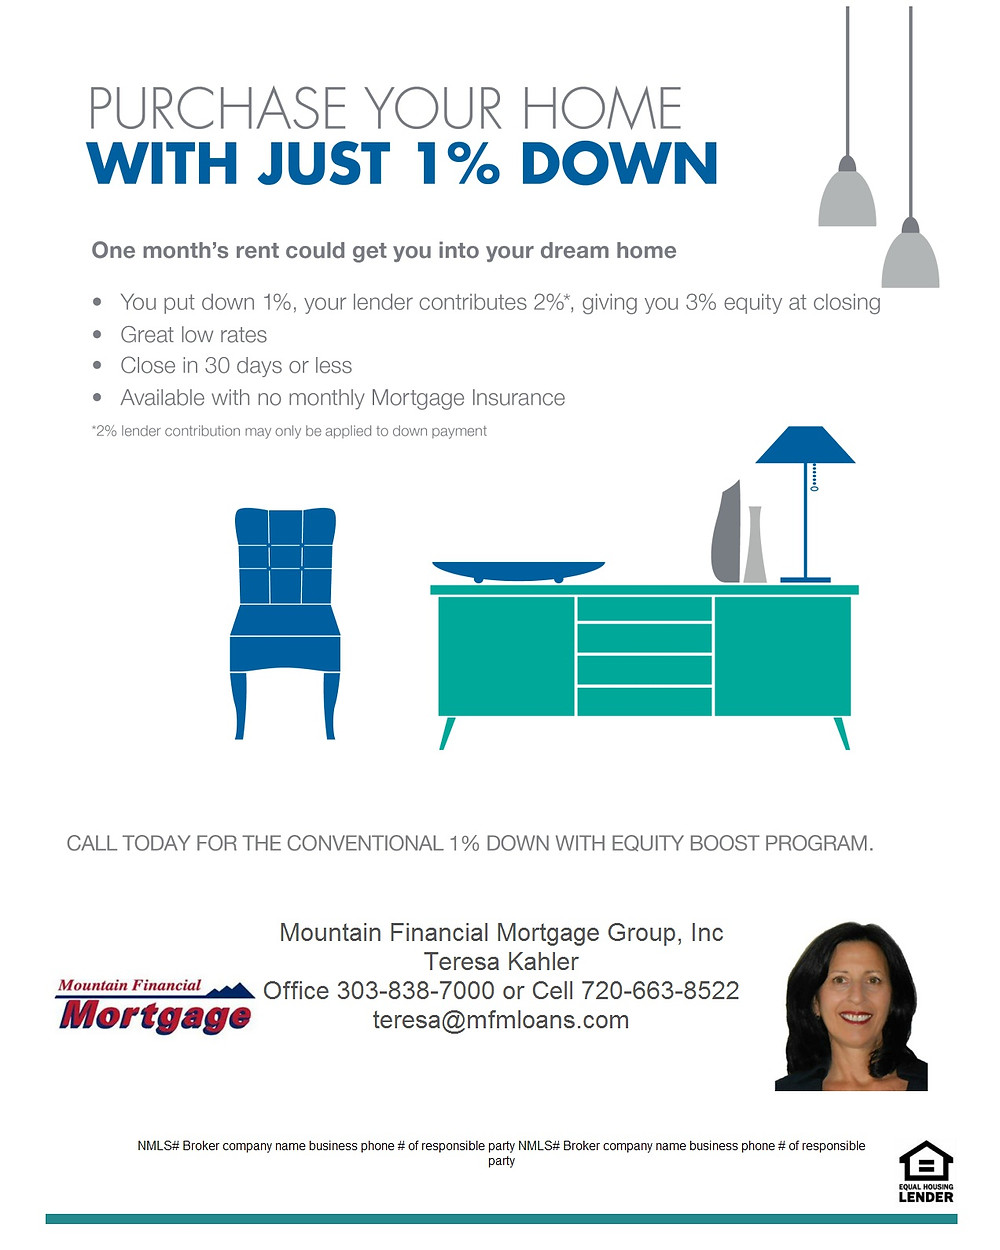 Now you can purchase a home with only a 1% down payment. No income limits in Jefferson County Colorado. Call or email me for details.